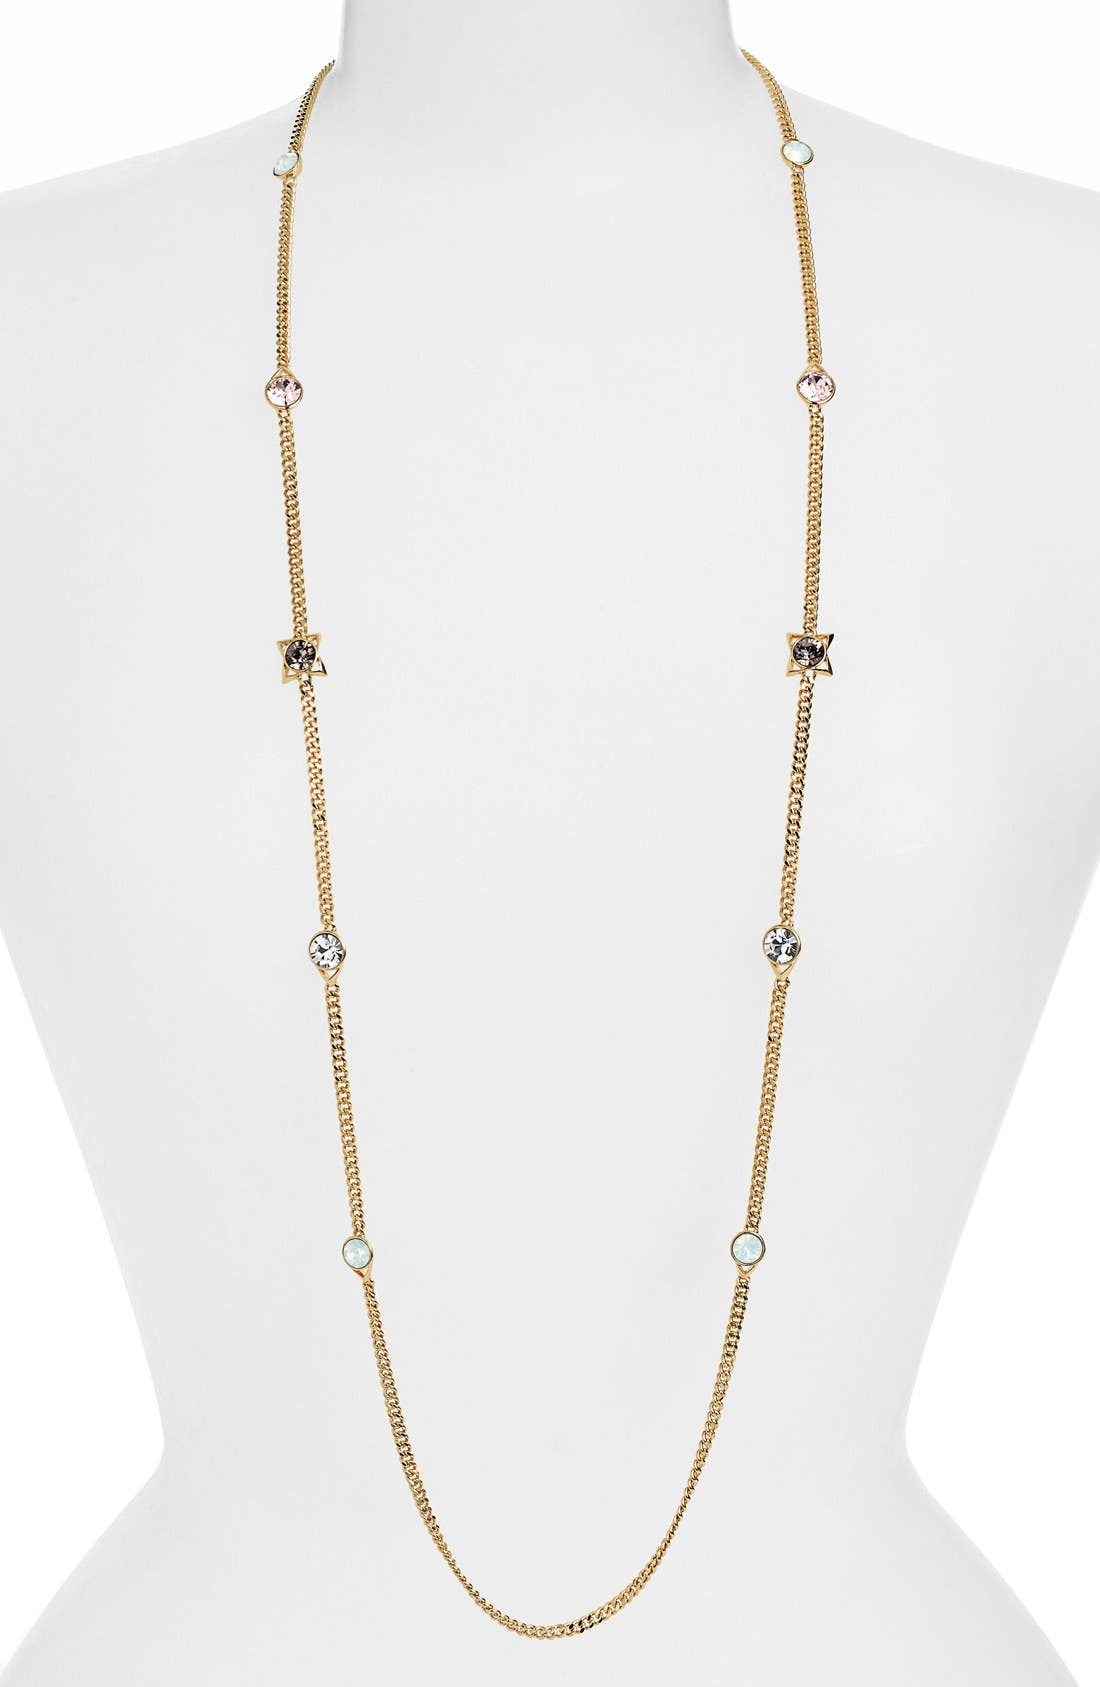 Alternate Image 1 Selected - Givenchy Long Station Necklace